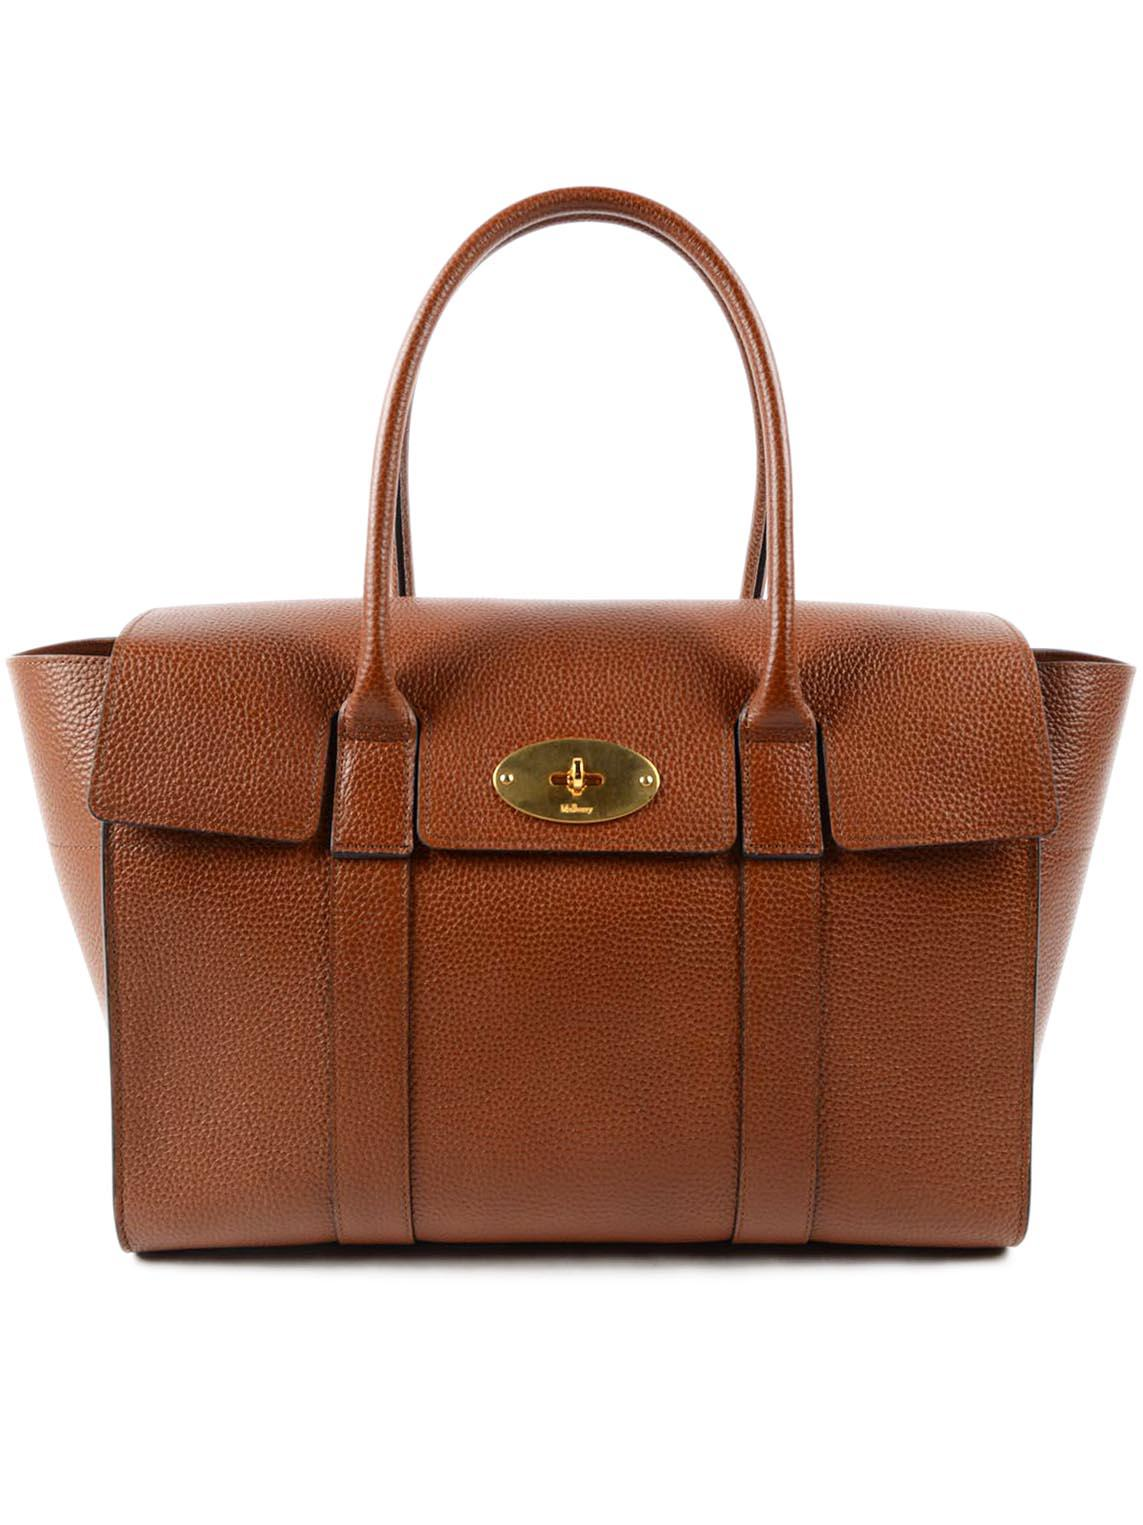 8e336c58f4e9 Lyst - Mulberry Bayswater in Brown